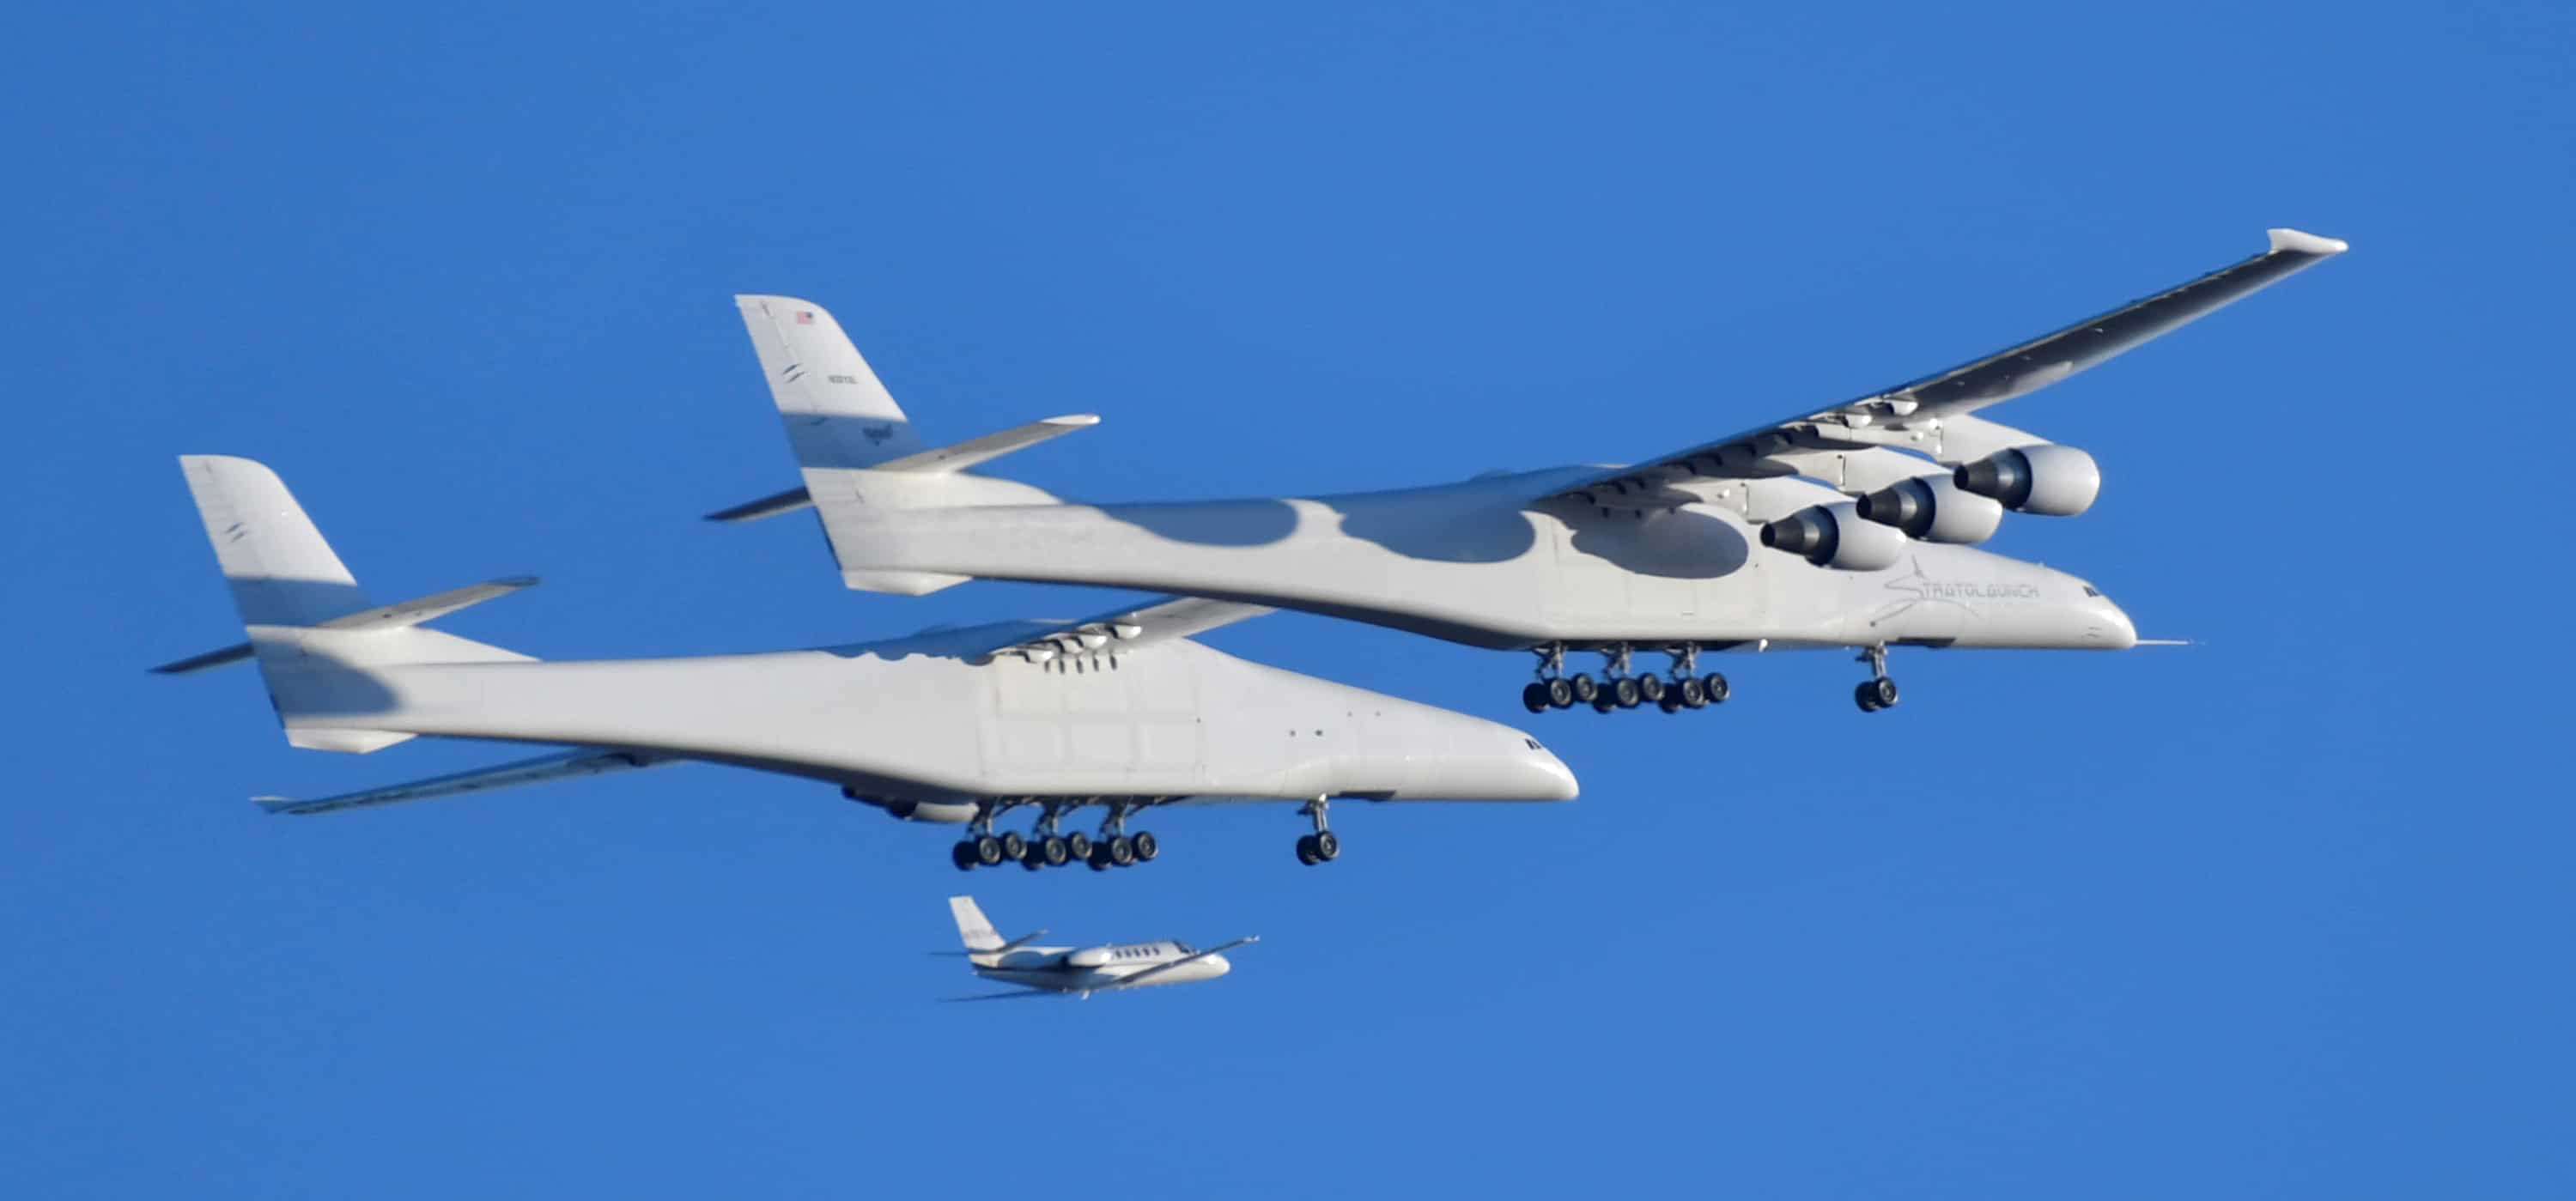 World`s largest aircraft Roc:Has wingspan length of a football field